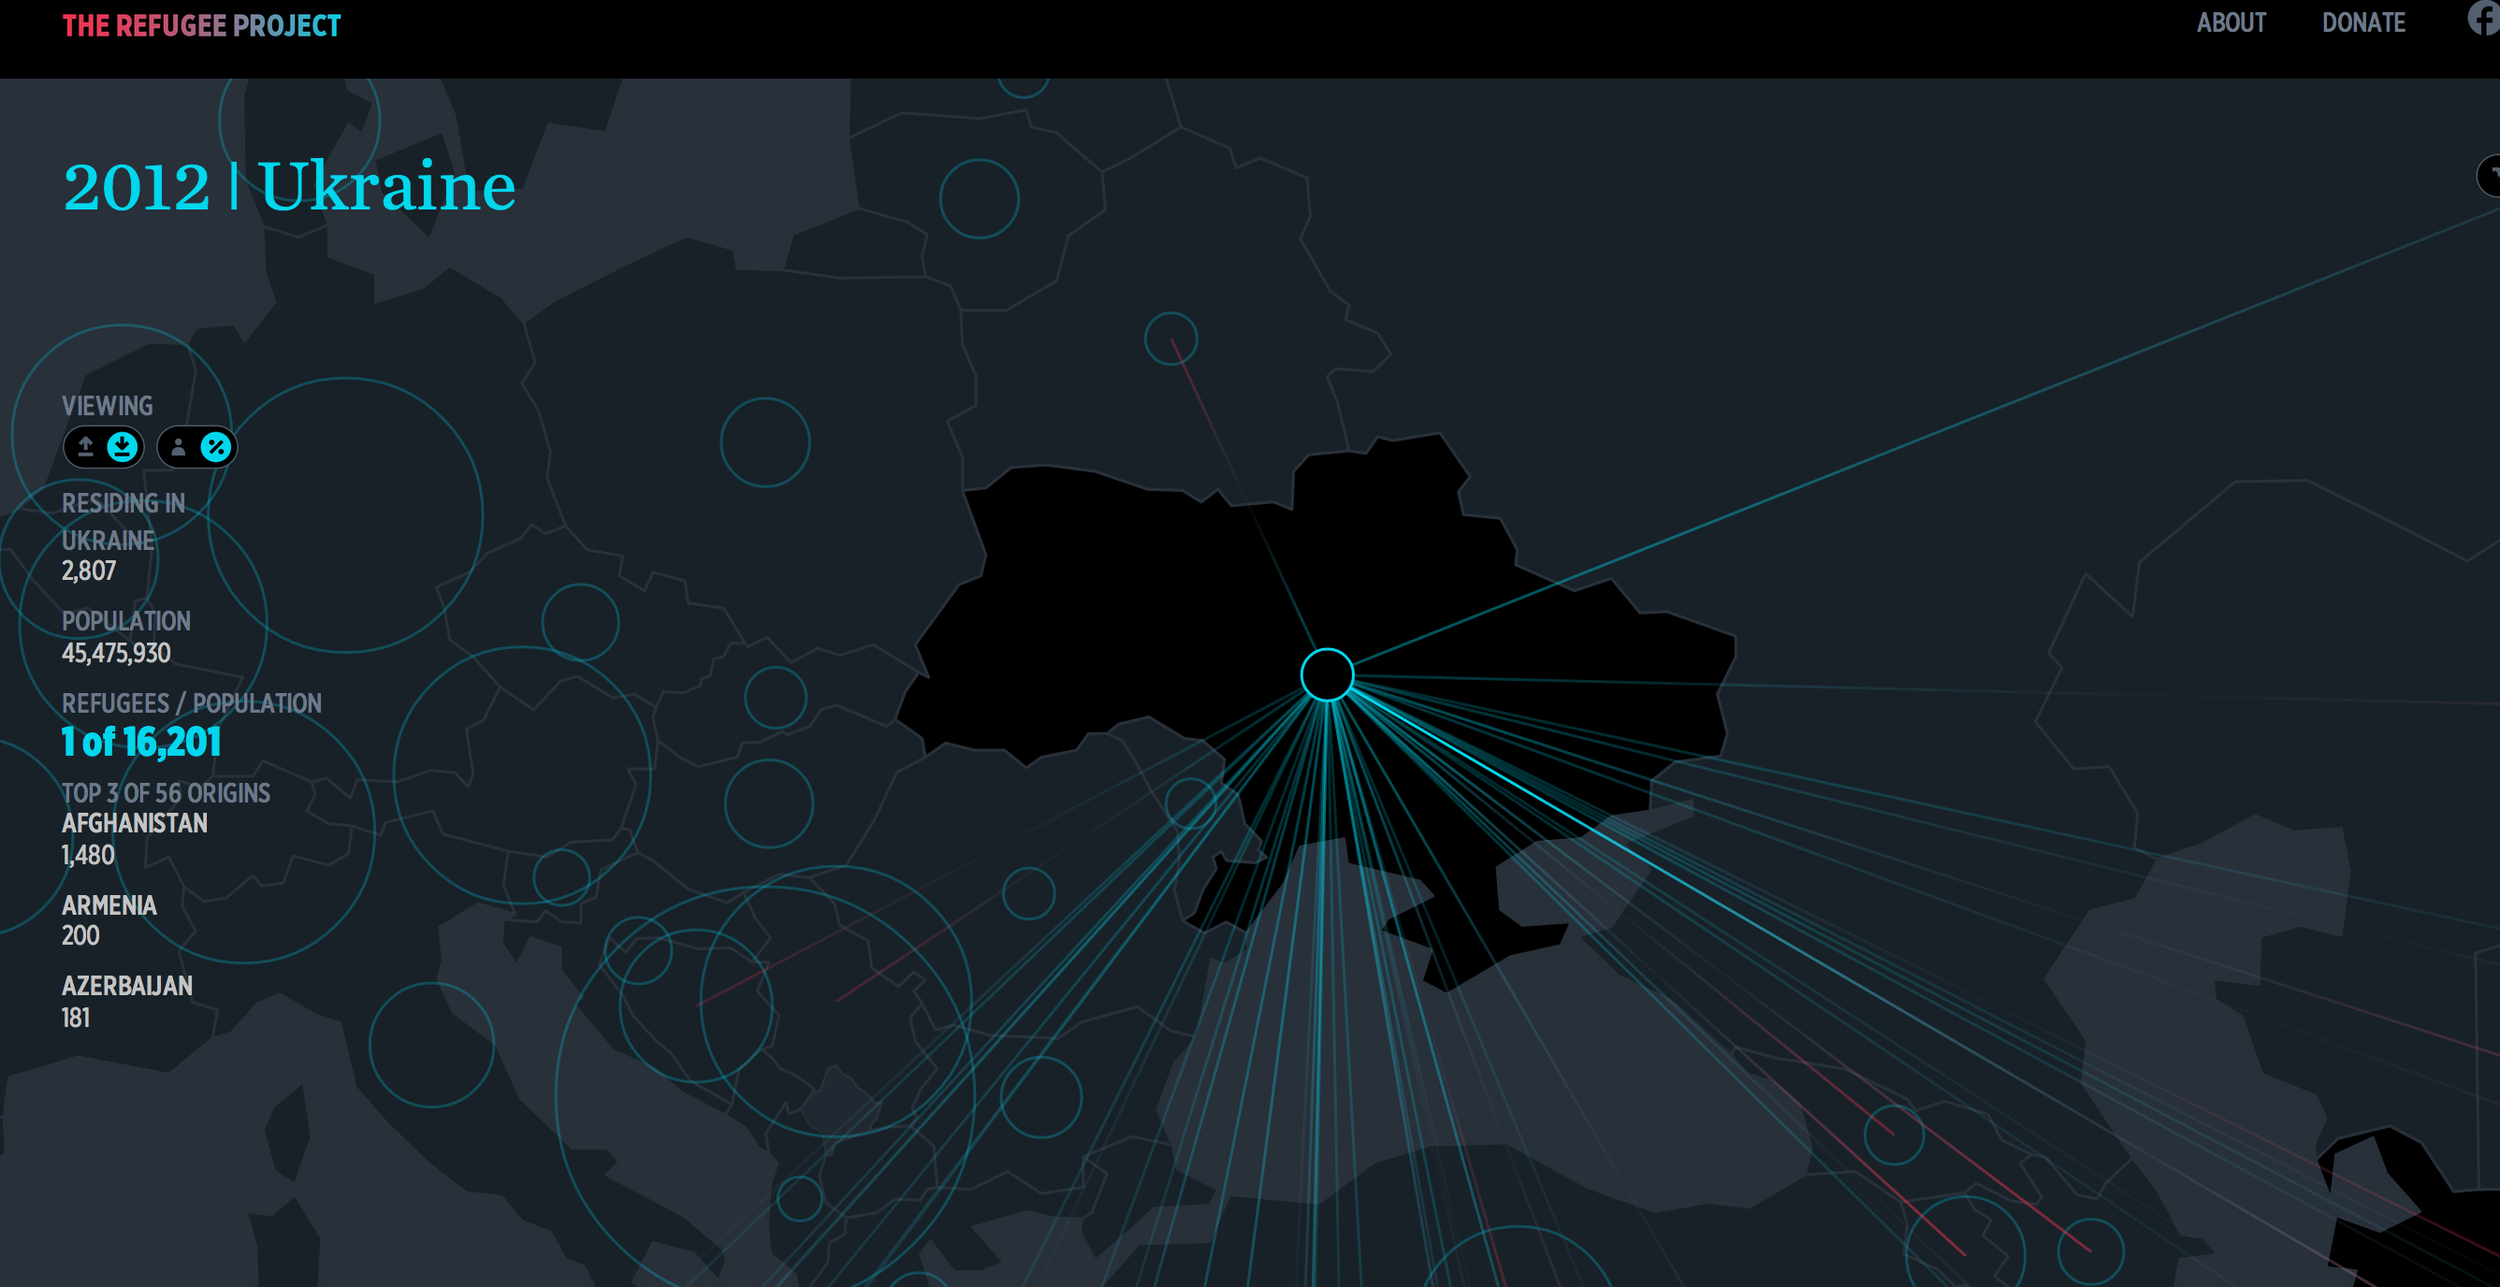 A screenshot from the Refugee Project that depicts the number of refugees residing in Ukraine: 2,807.